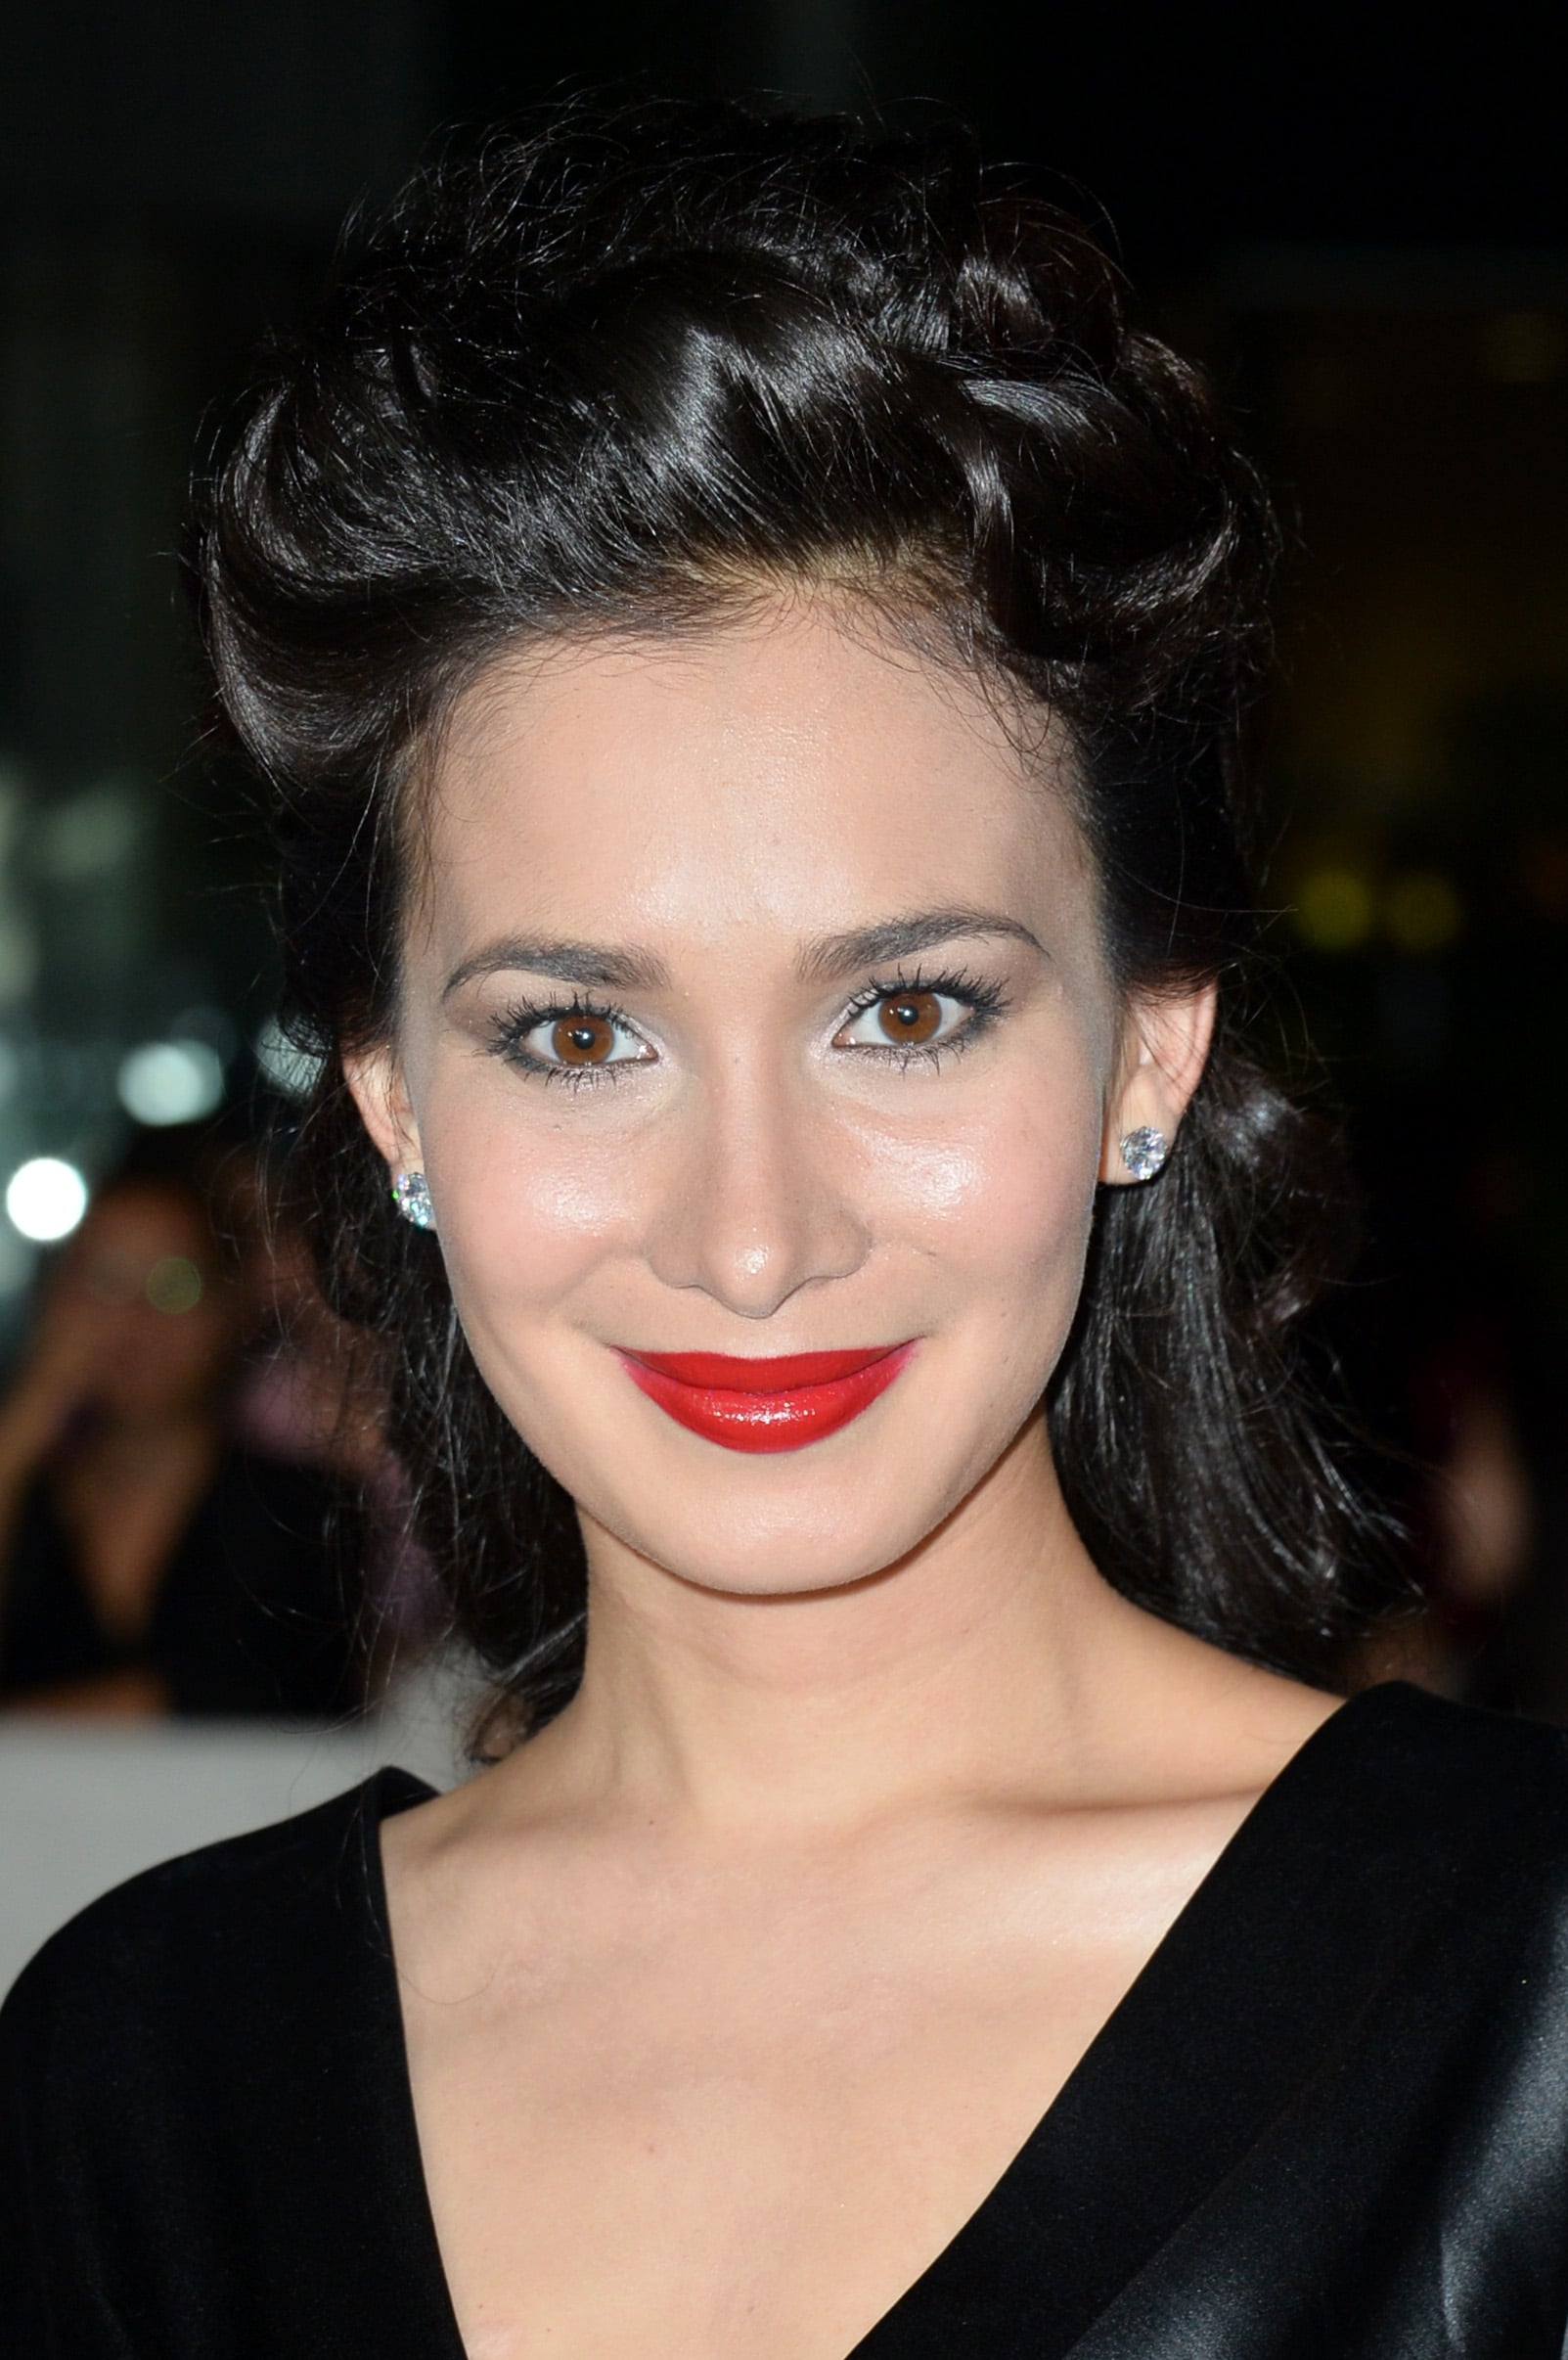 At the premiere of American Dreams, Celina Jade's red lip popped against her all-black attire.